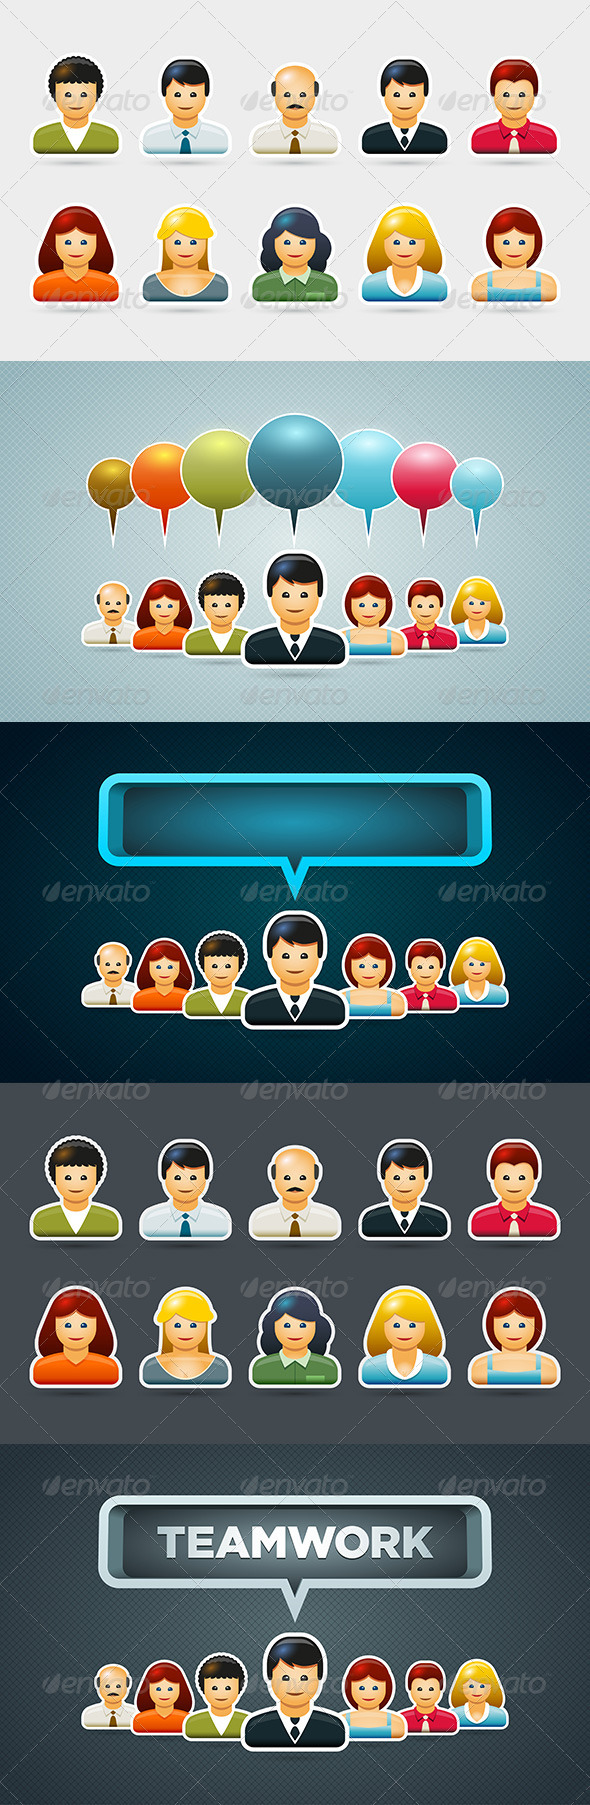 Business People Icon Set - People Characters